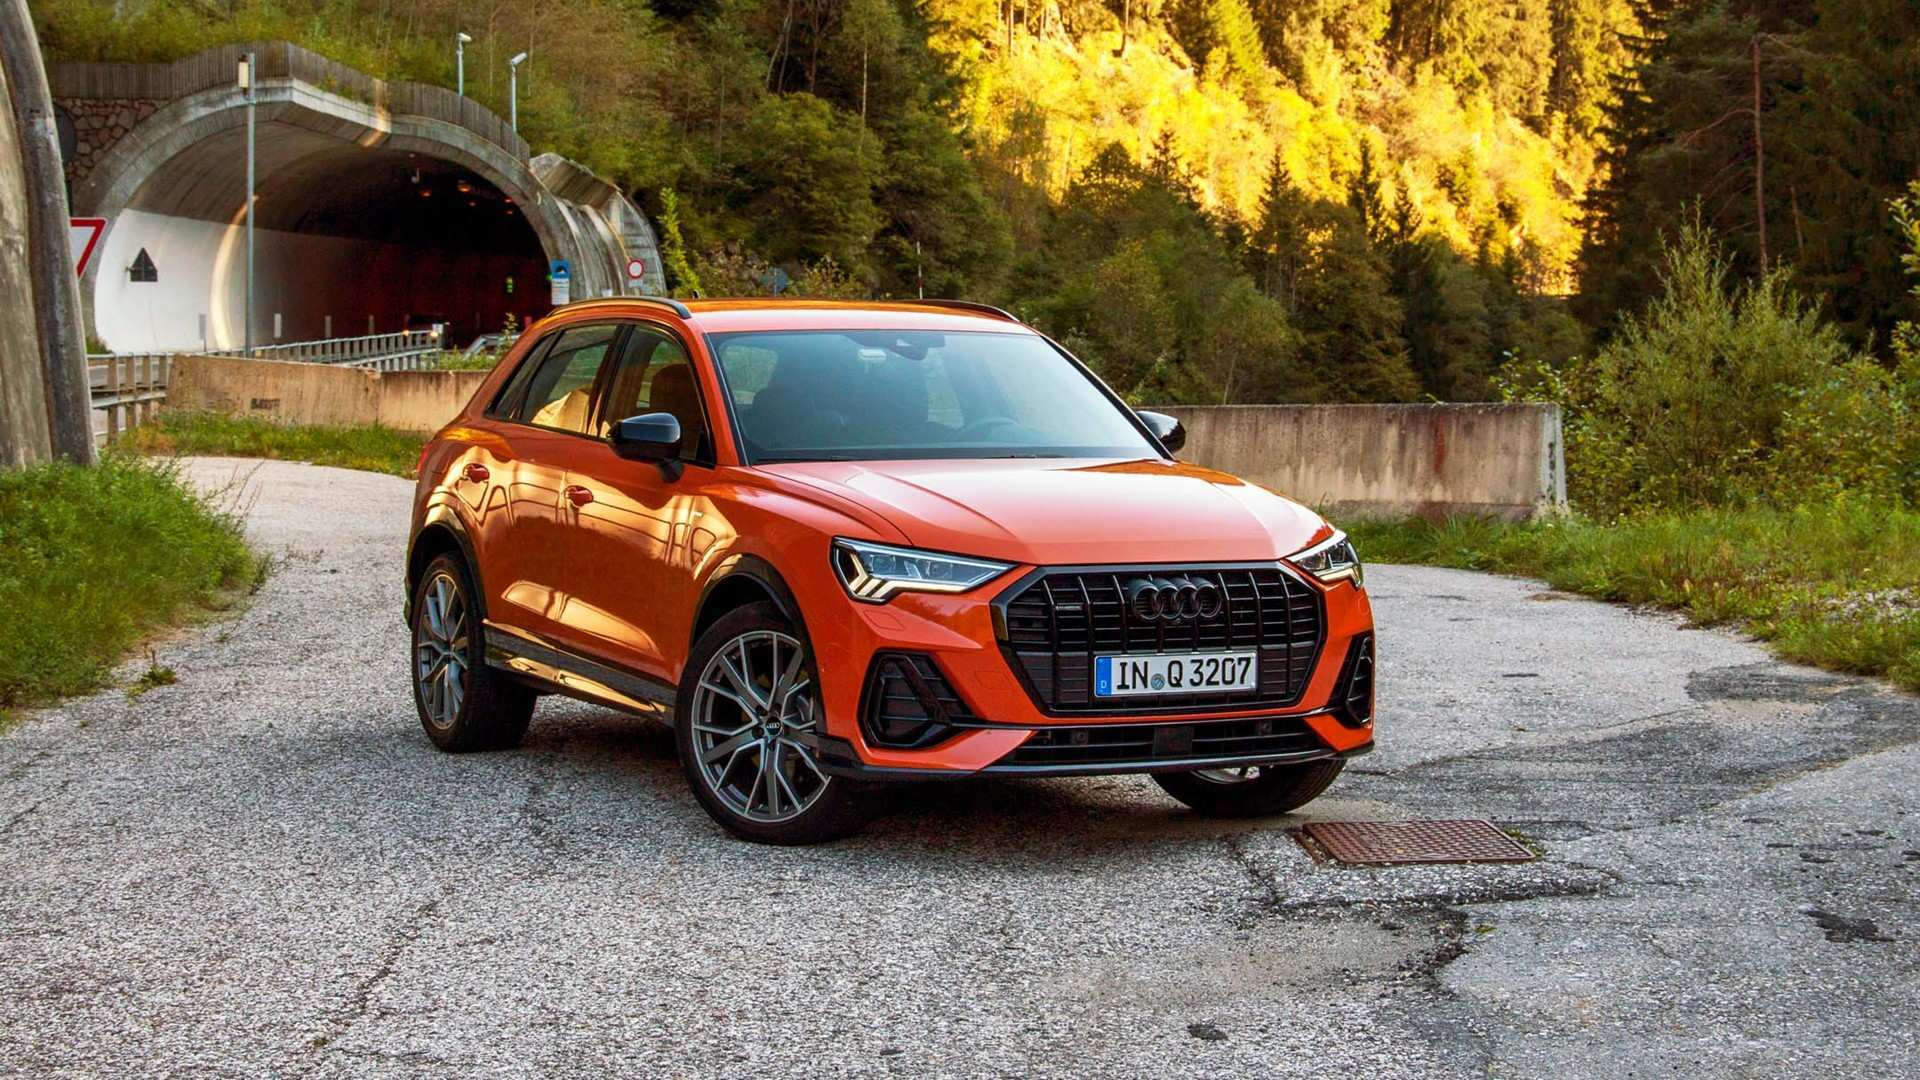 49 All New New Audi Q3 2019 Price First Drive Research New with New Audi Q3 2019 Price First Drive